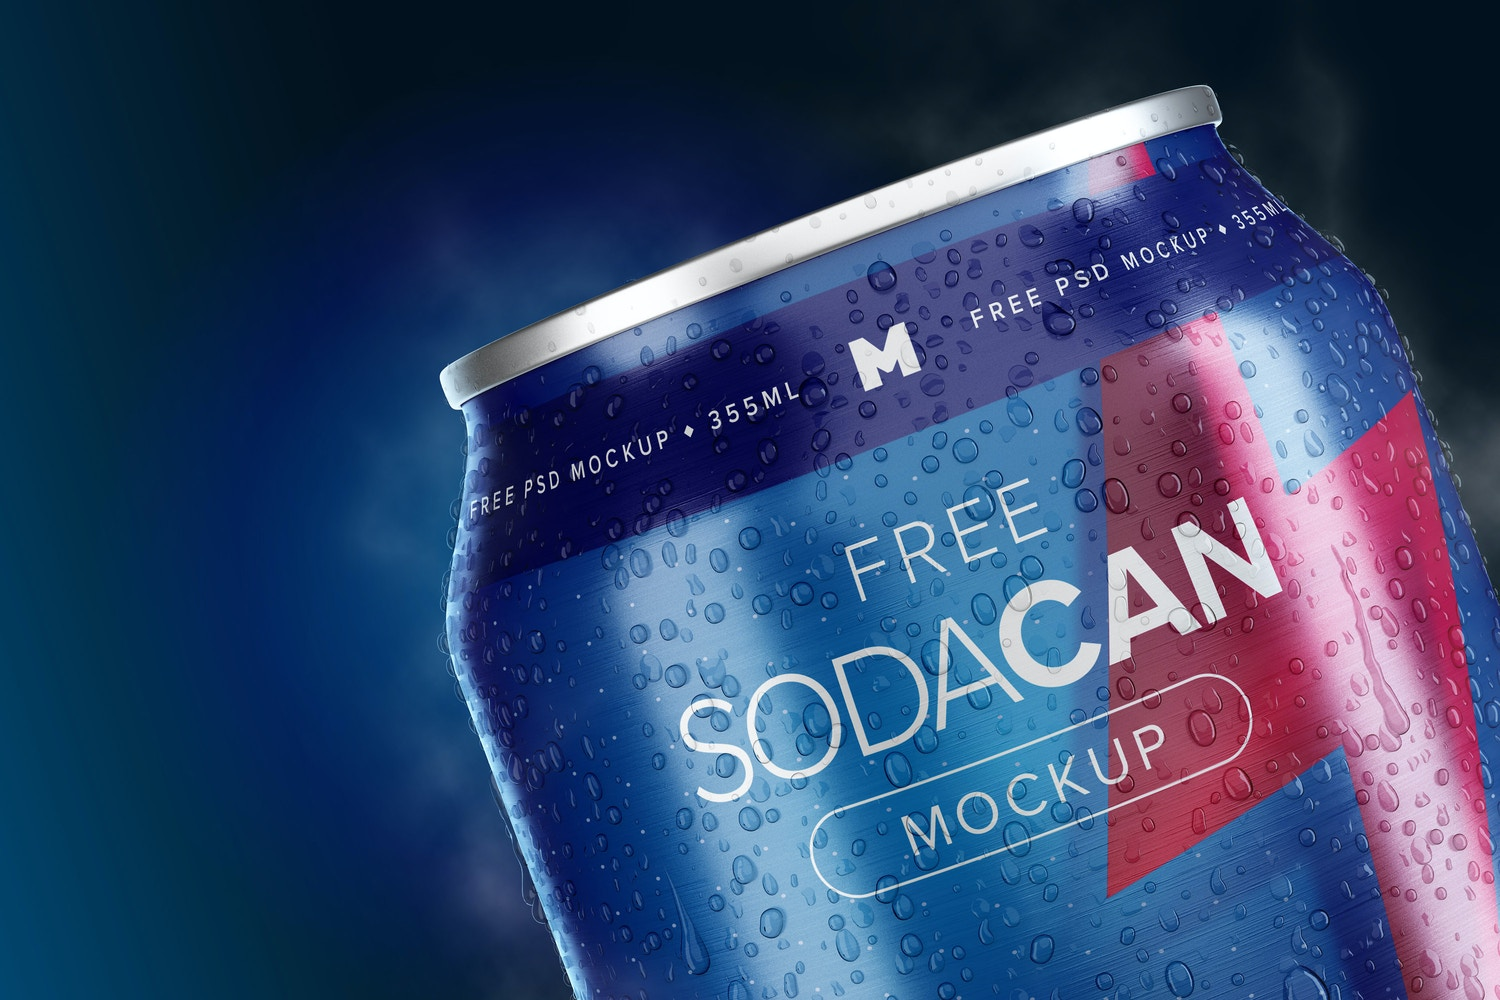 355ml Soda Can Mockup 06 by Original Mockups on Original Mockups